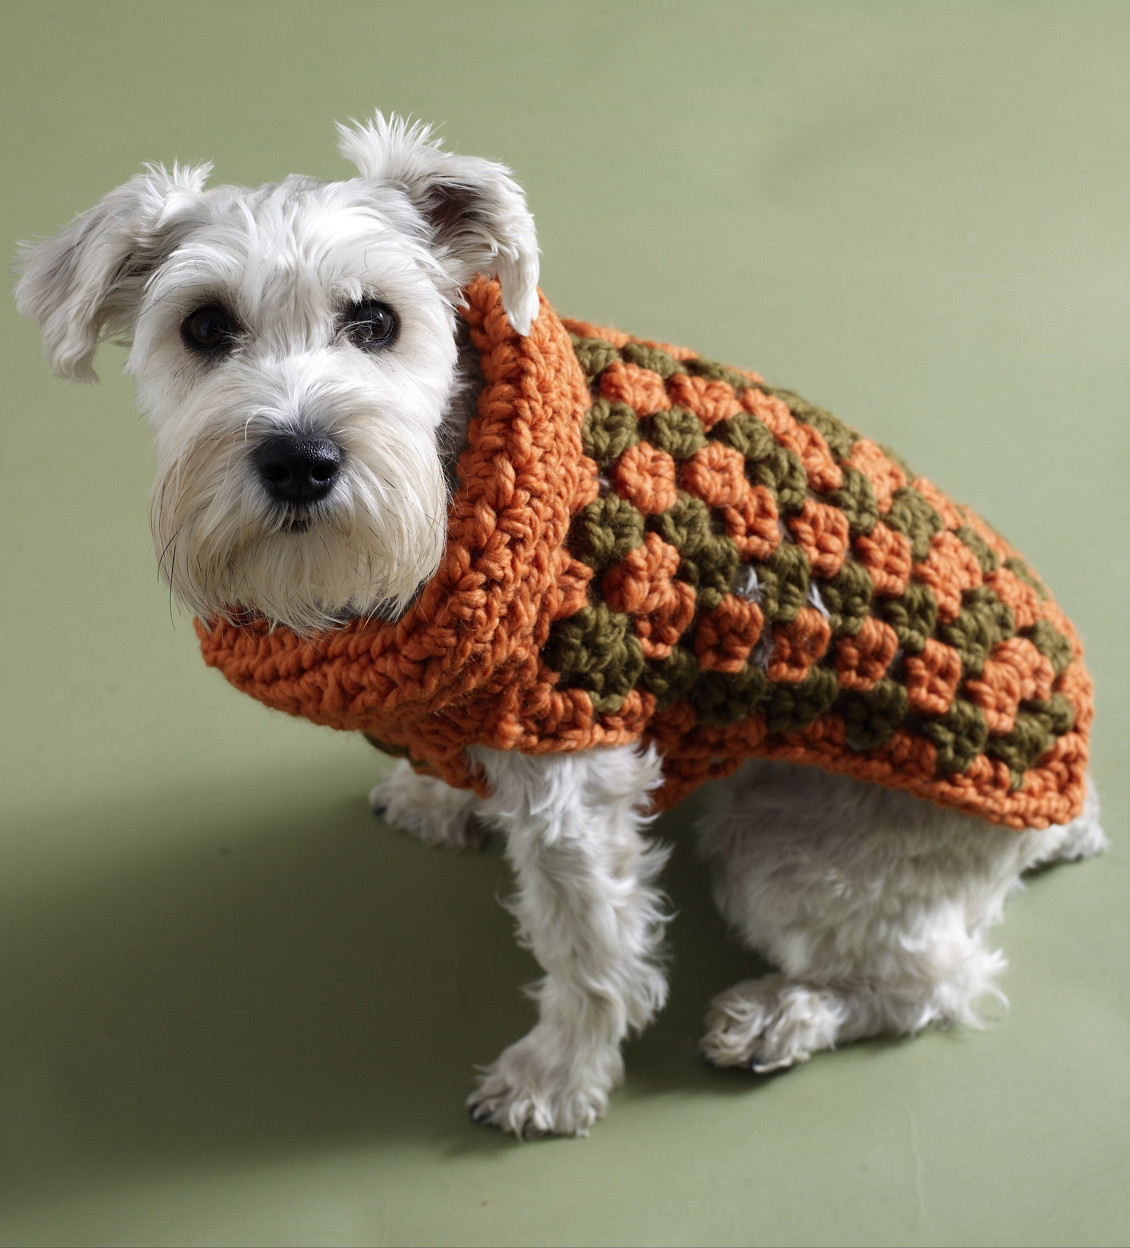 Crochet Small Dog Sweater Pattern Awesome Keep Your Dog Warm with A Crochet Dog Sweater Crochet Of Incredible 47 Images Crochet Small Dog Sweater Pattern